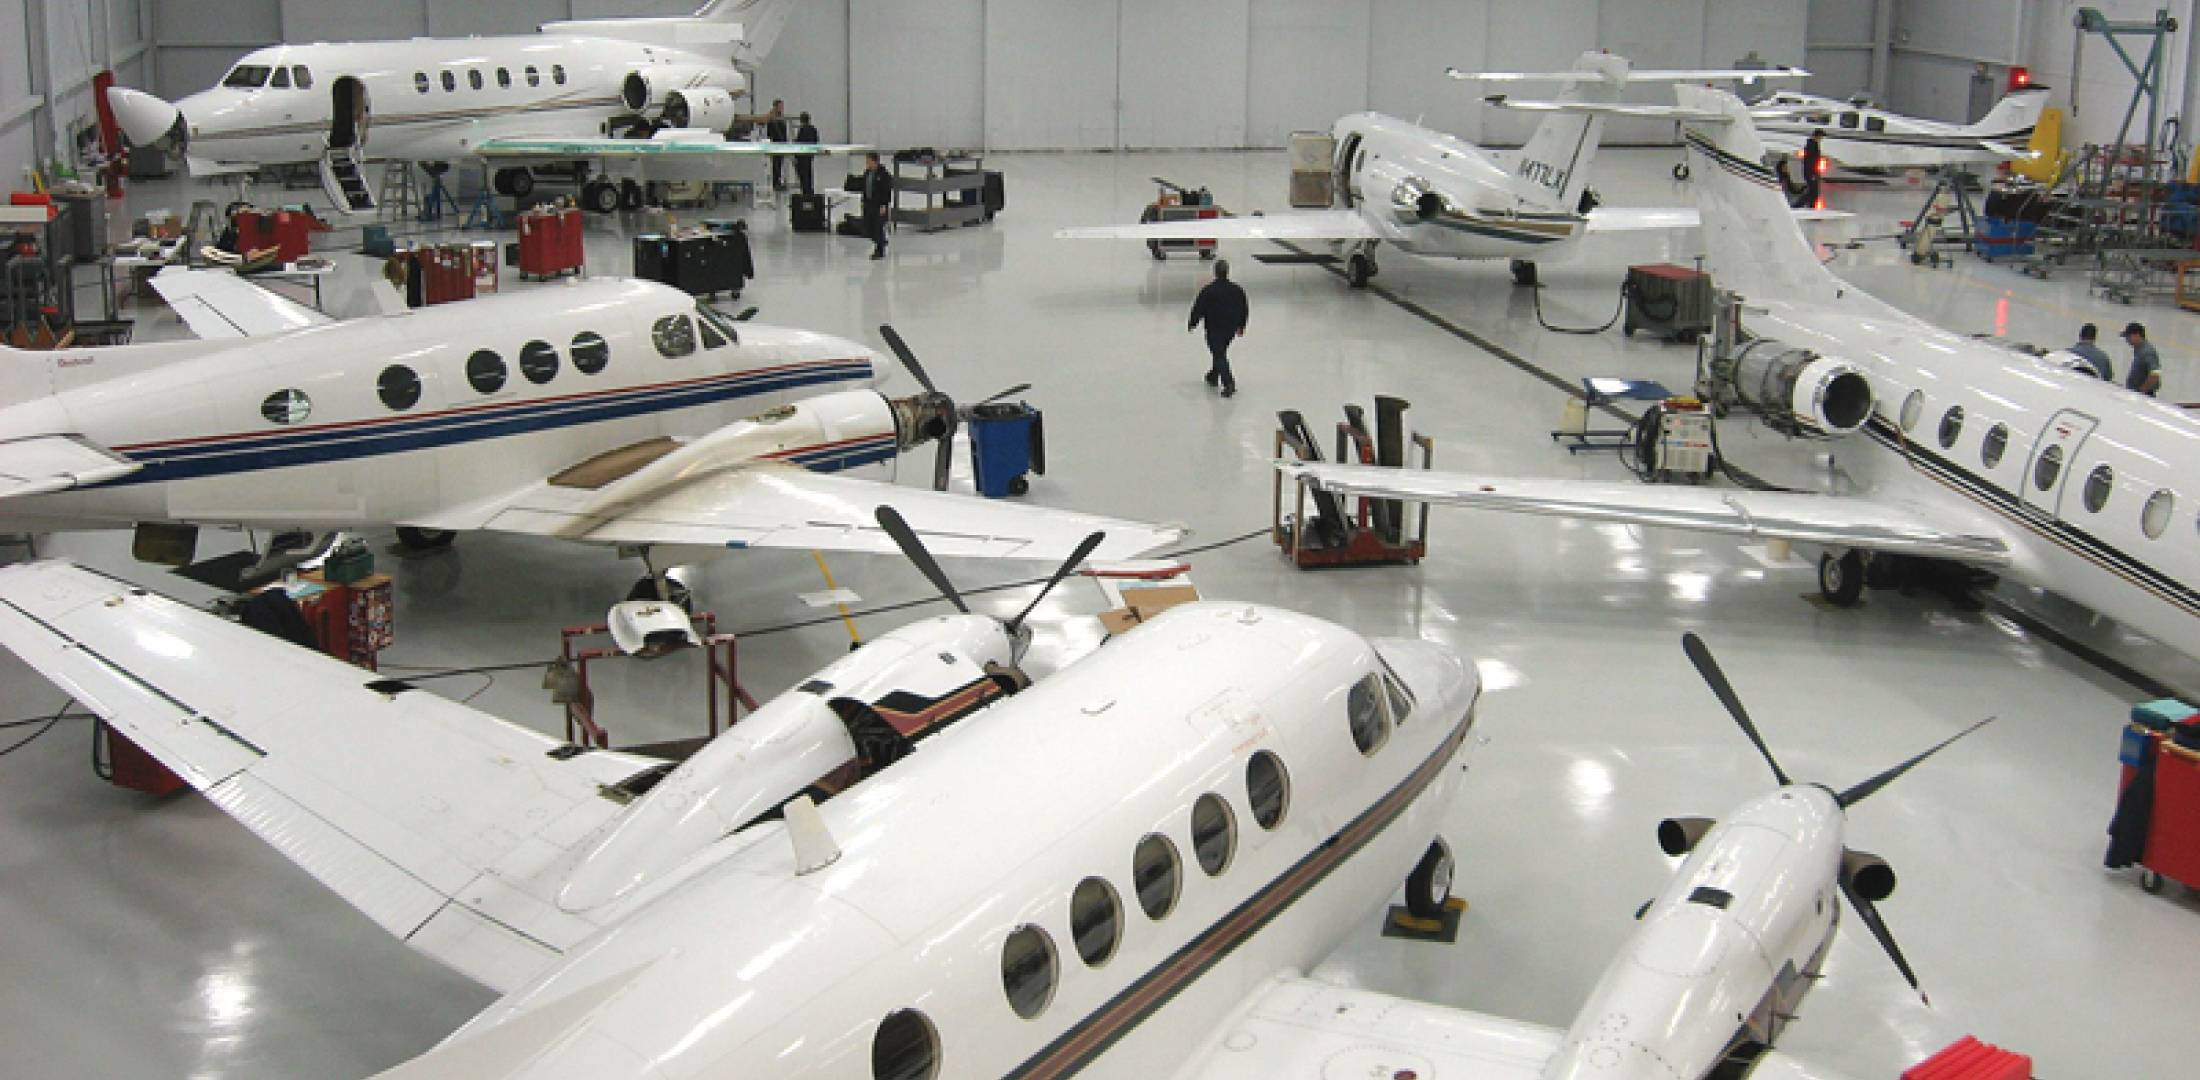 Mro profile stevens aviation dayton business aviation news the stevens aviation part 145 maintenance center at dayton supports both jets and turboprops fandeluxe Image collections